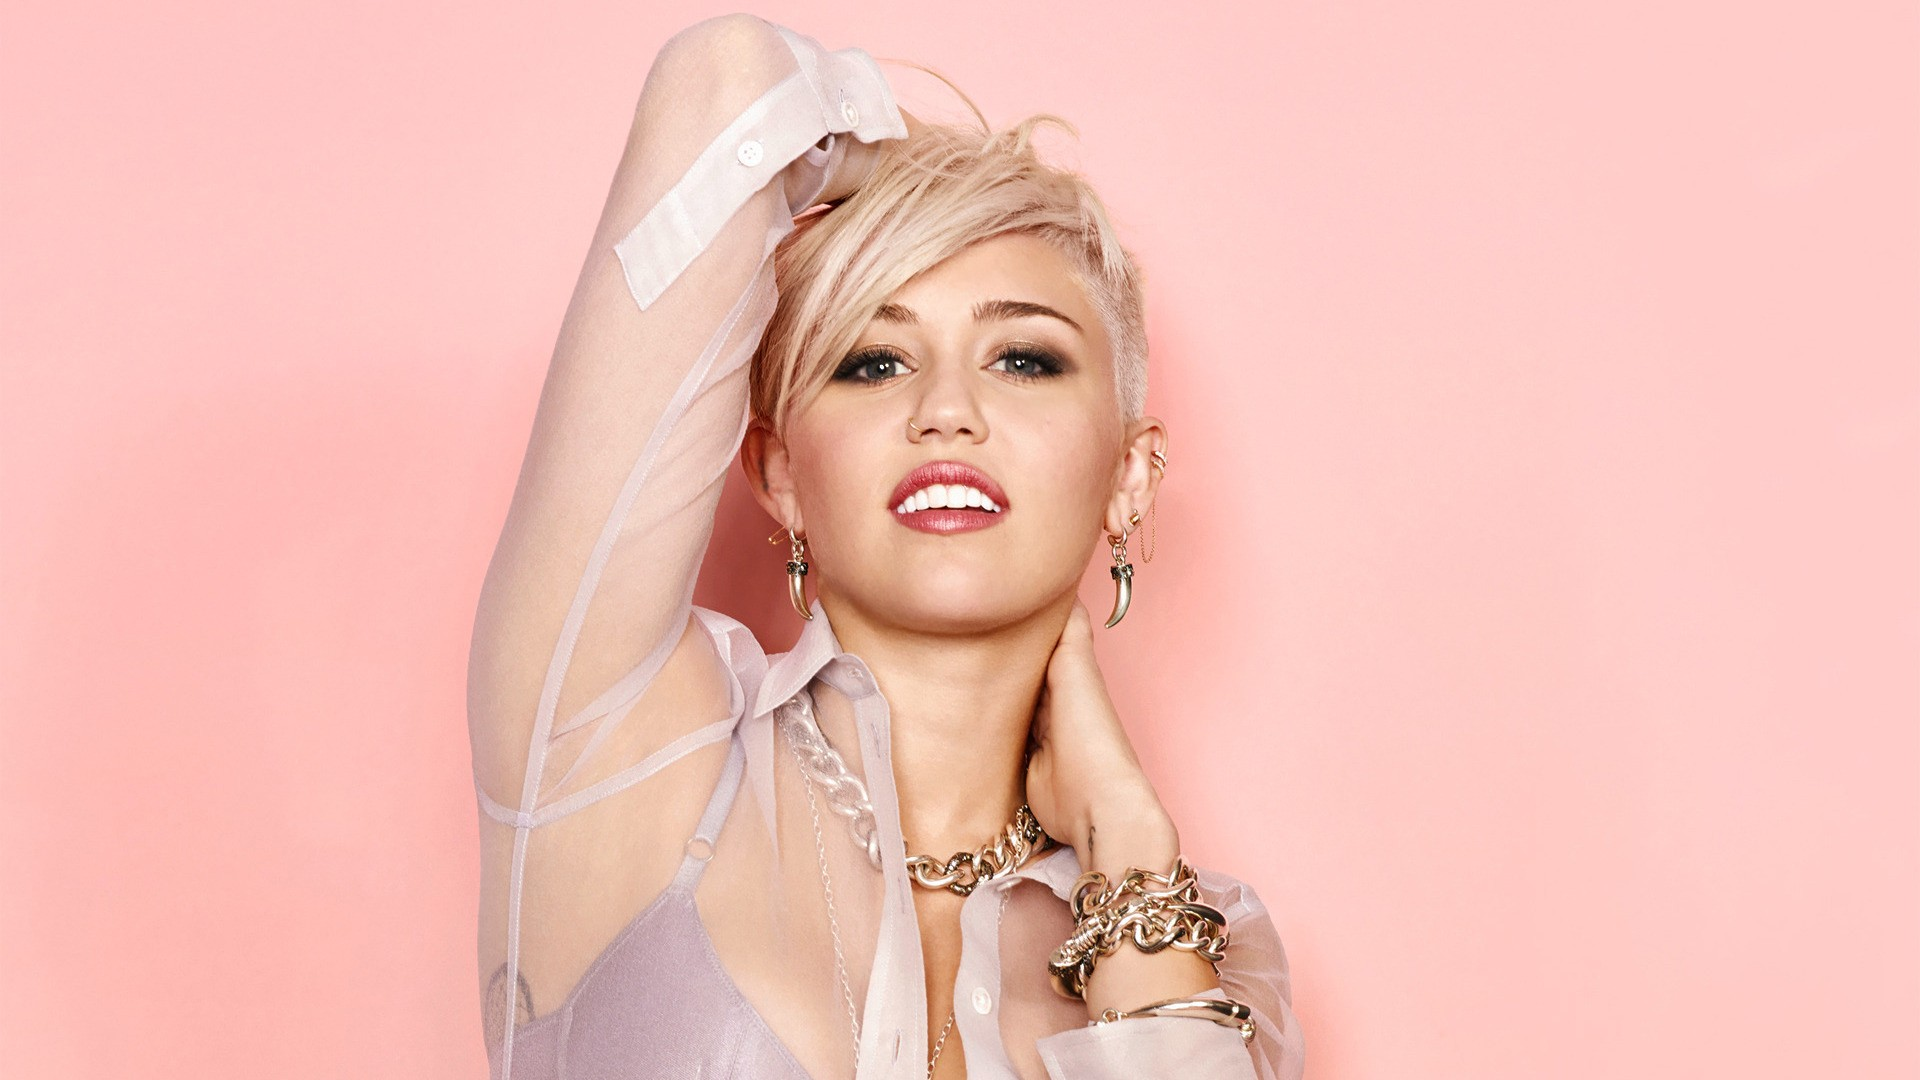 Miley Cyrus Short Hair   Wallpaper High Definition High Quality 1920x1080